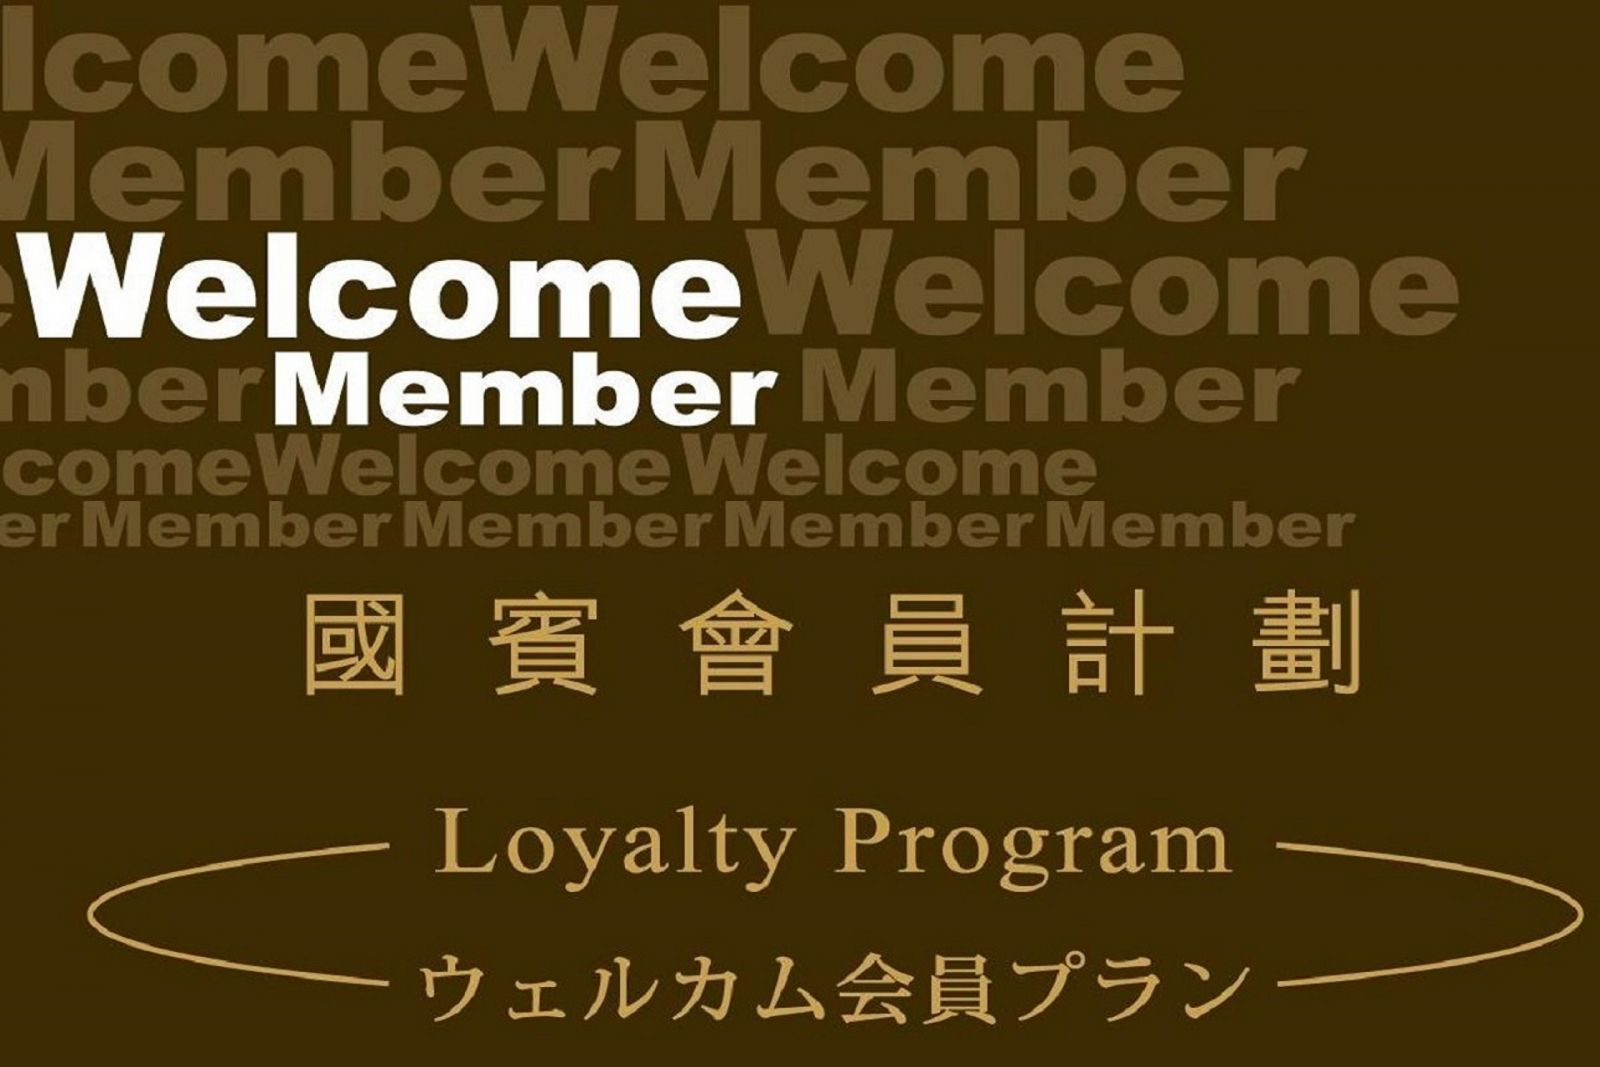 from now on will no longer accept the membership application of Welcome Member